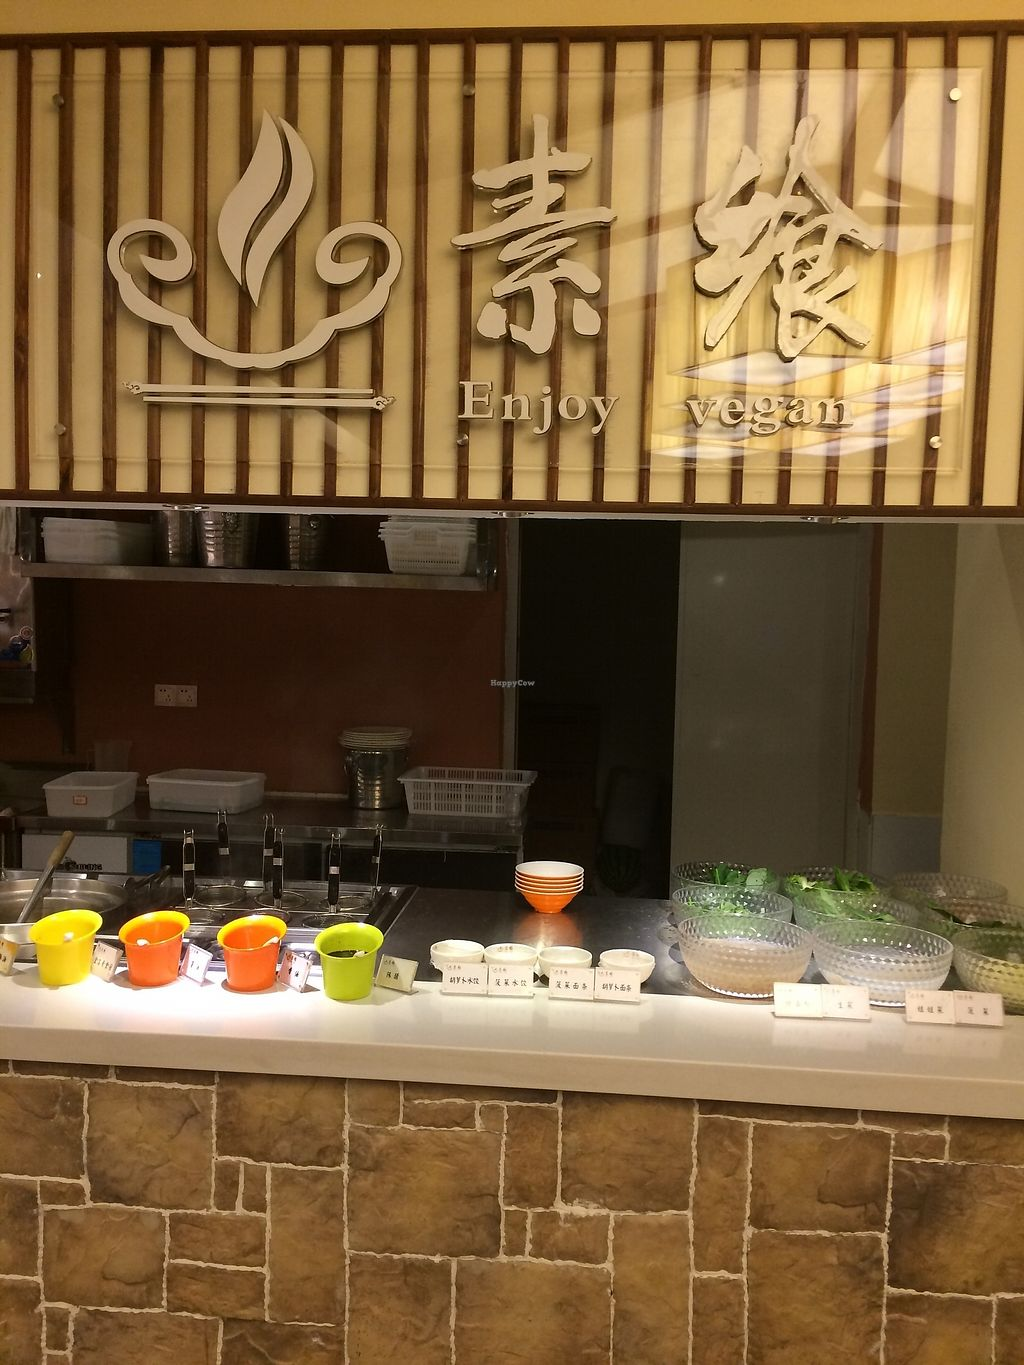 """Photo of Enjoy Vegan  by <a href=""""/members/profile/veganinseattle"""">veganinseattle</a> <br/>Noodle and Dumpling station <br/> August 7, 2017  - <a href='/contact/abuse/image/98007/290012'>Report</a>"""